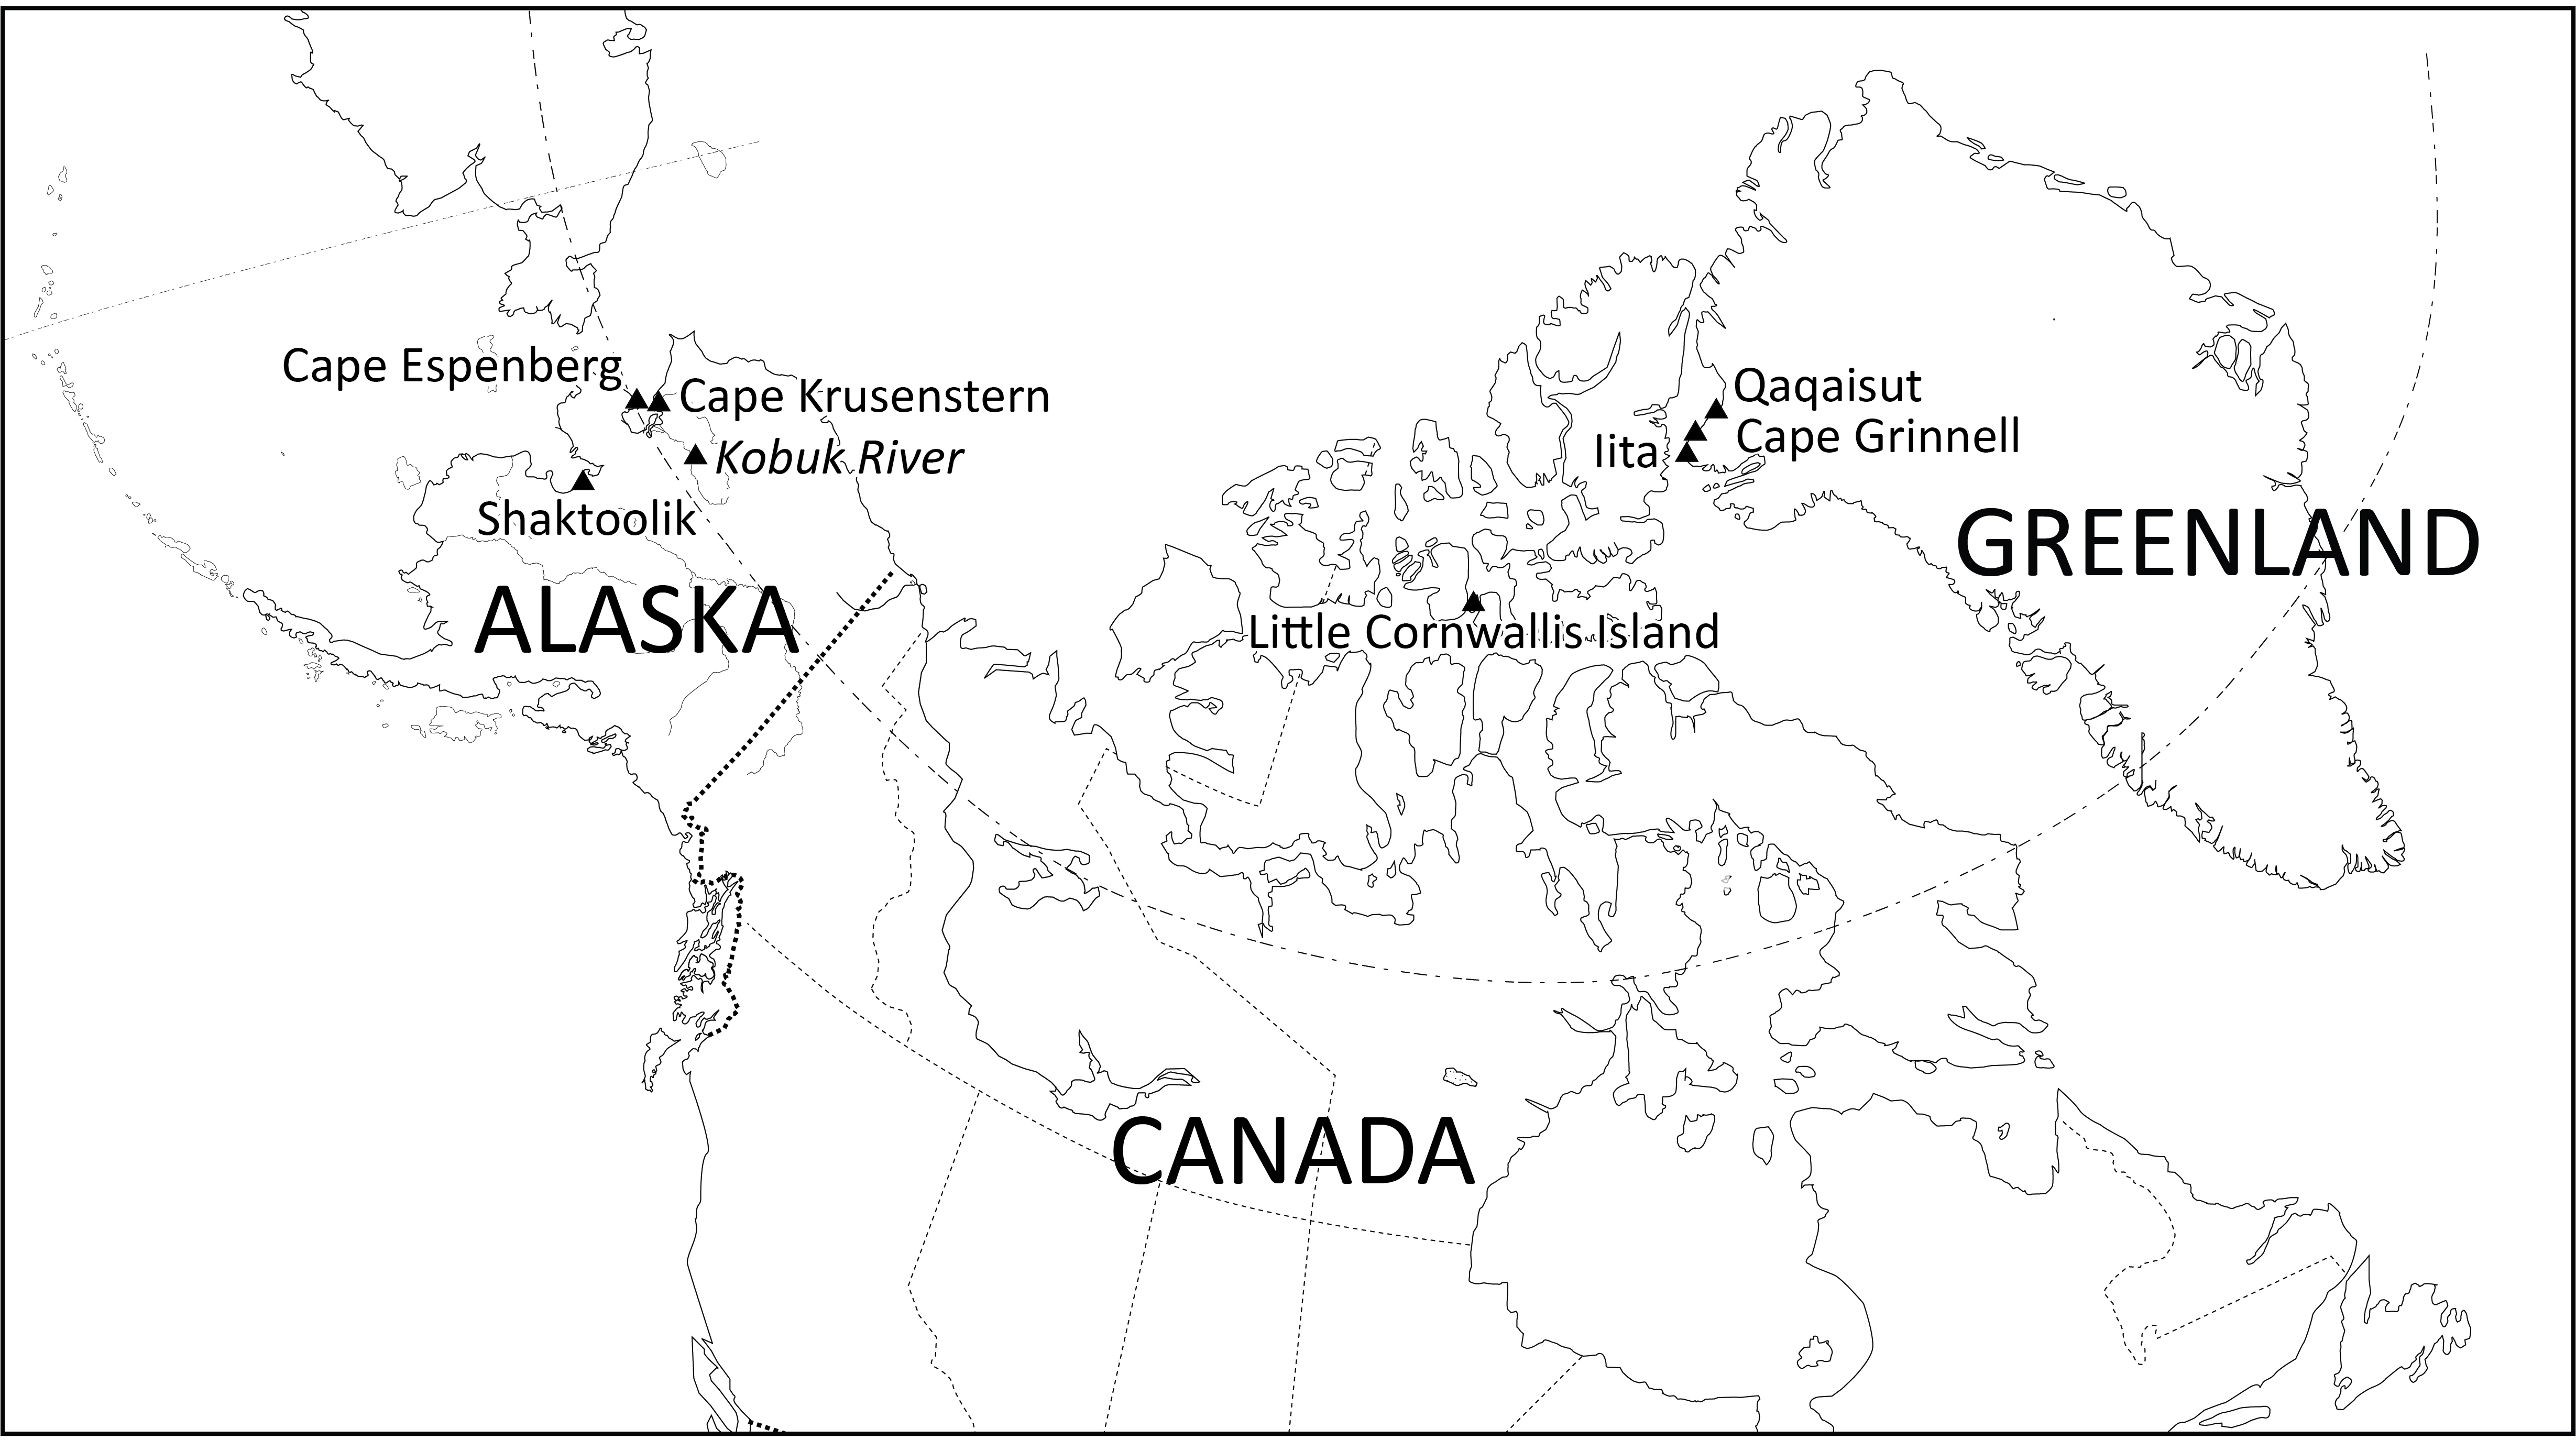 Map showing dig sites in Alaska, Canada and Greenland